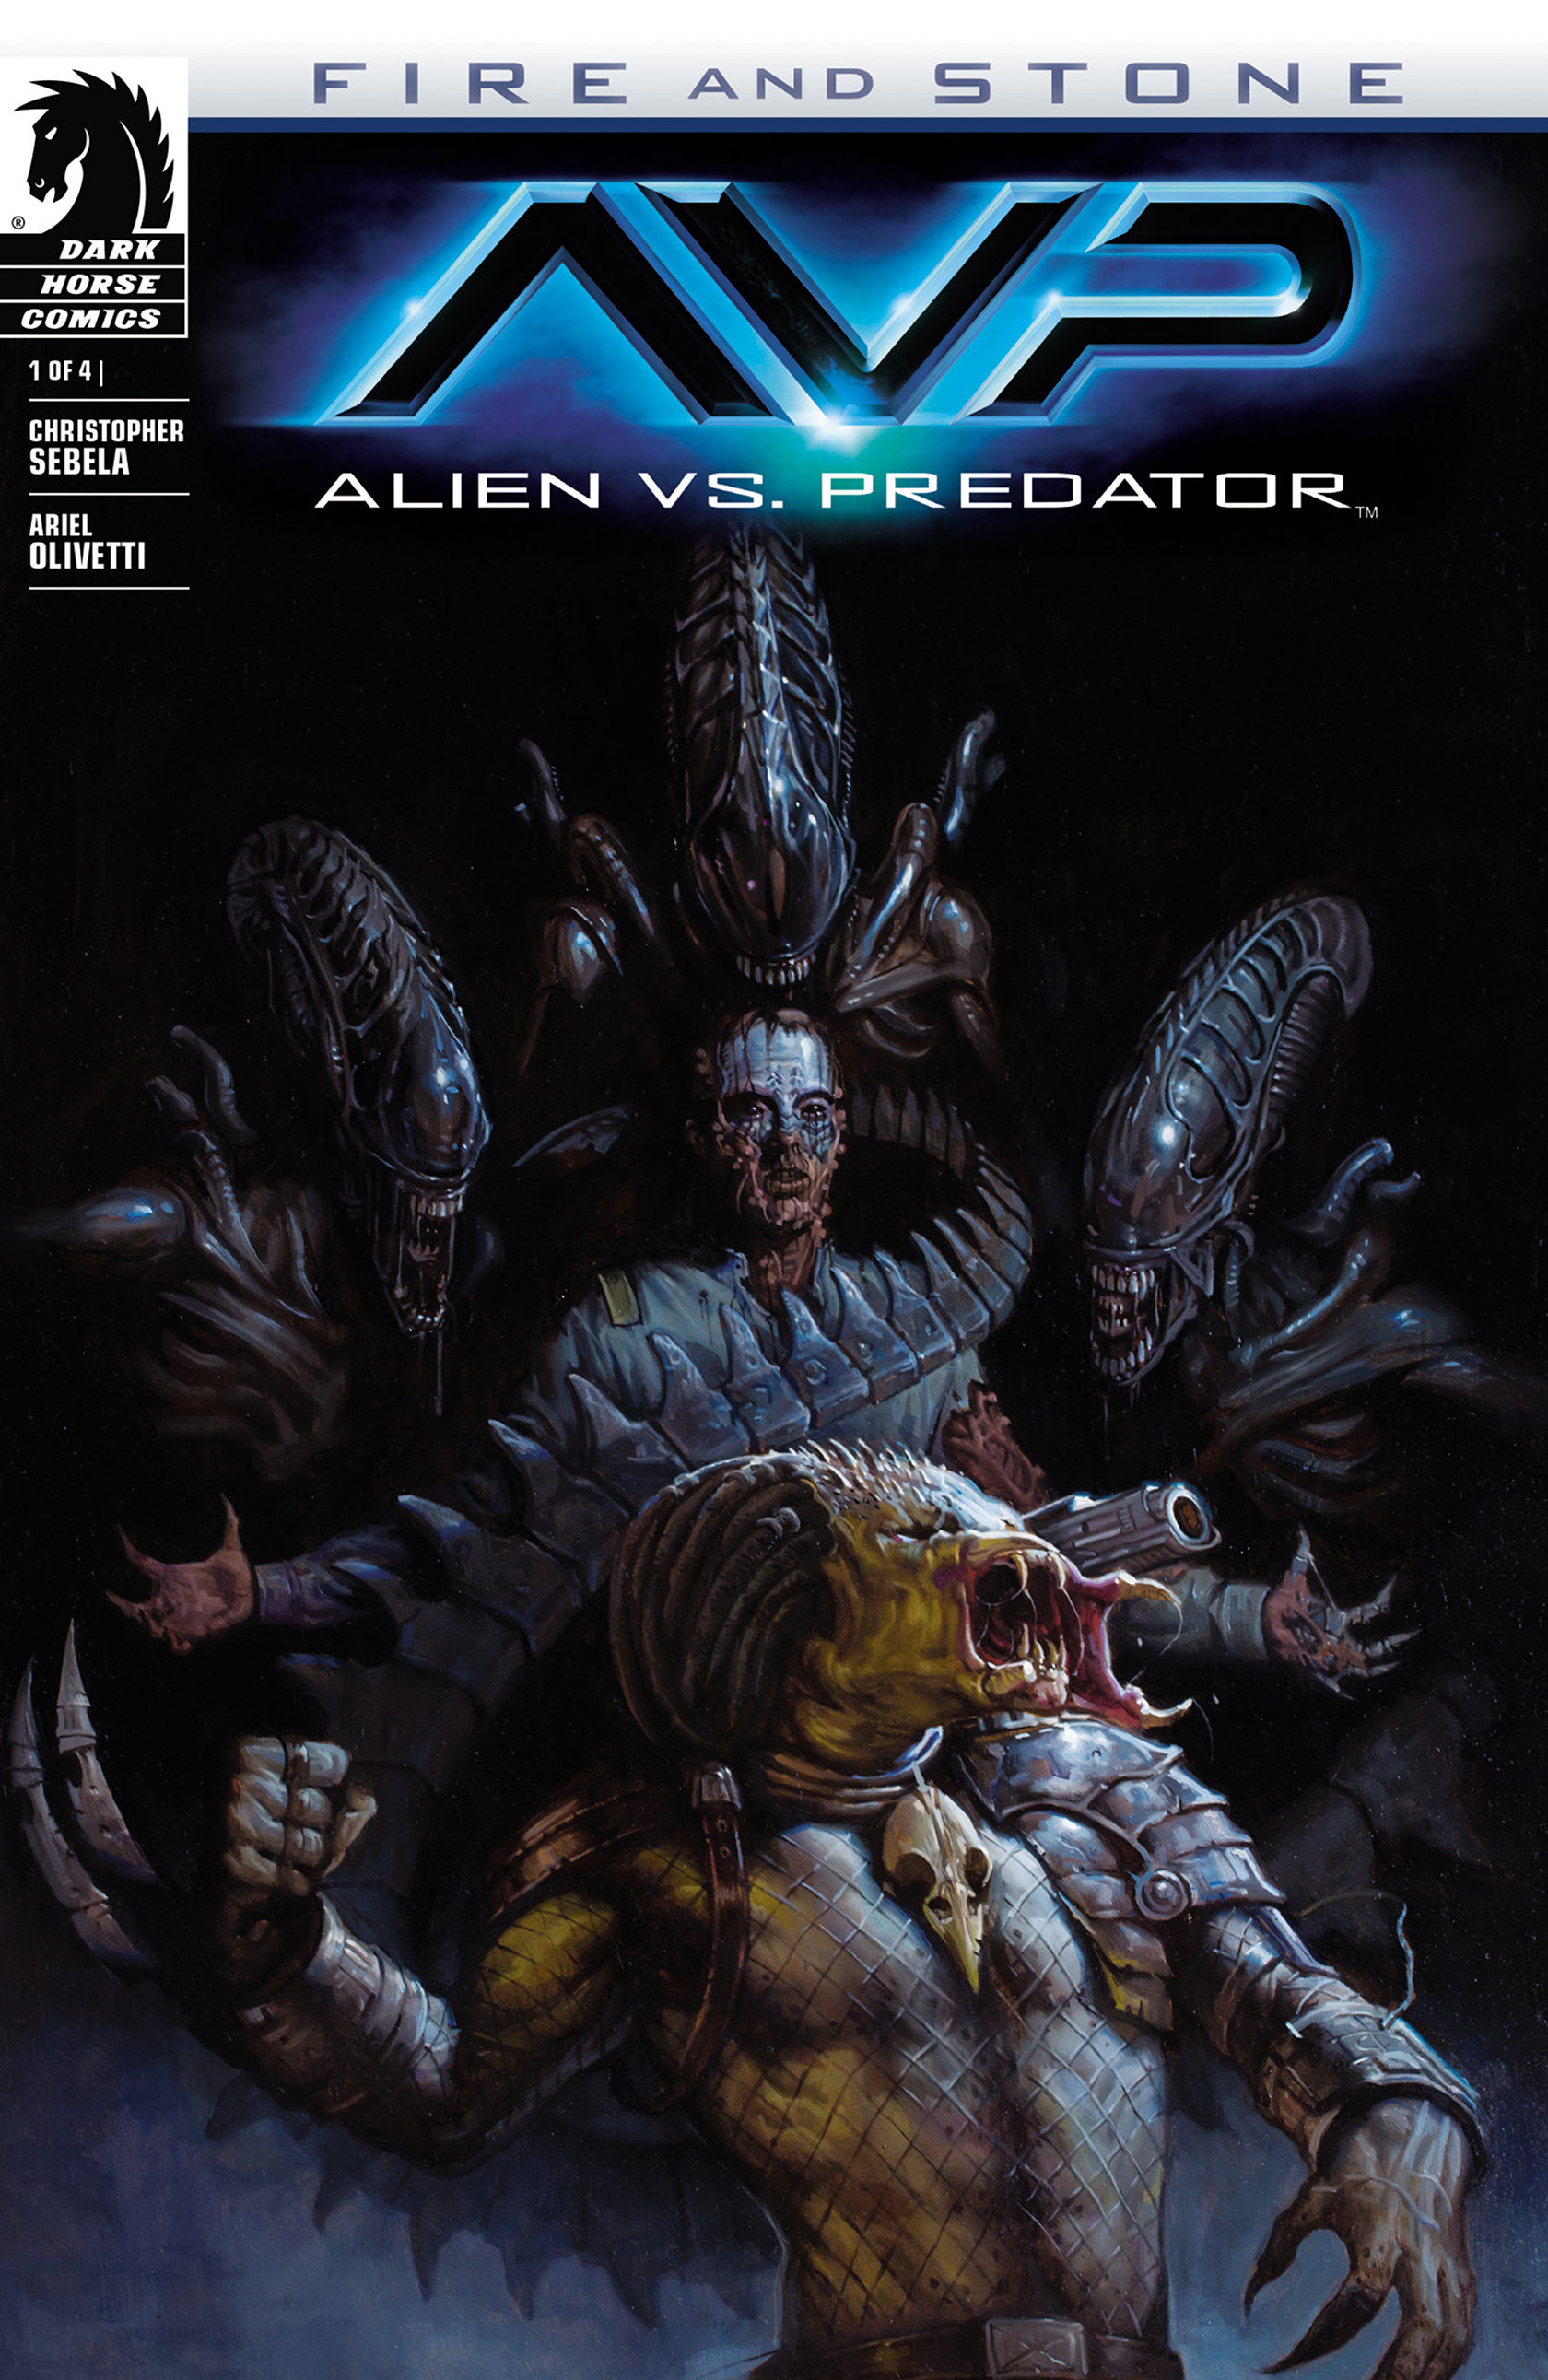 Read online Alien vs. Predator: Fire and Stone comic -  Issue #1 - 1